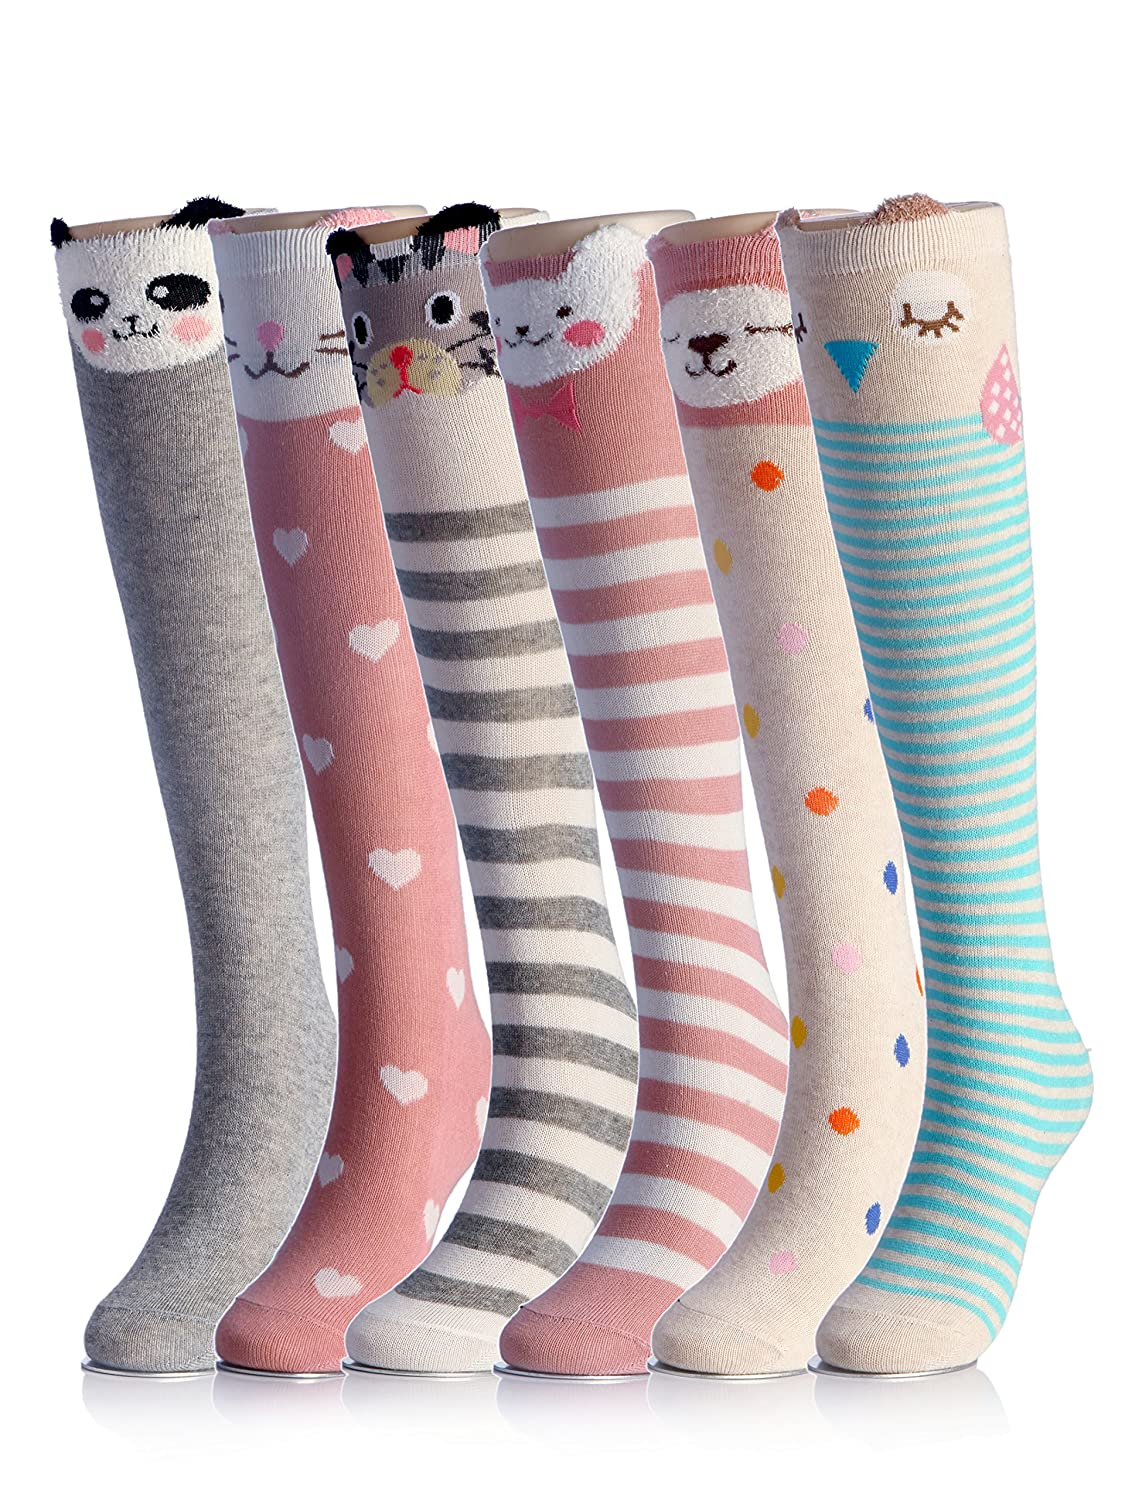 Cartoon Animal Cotton Knee High Socks For Children,6 Colors,One Size CISW008-6